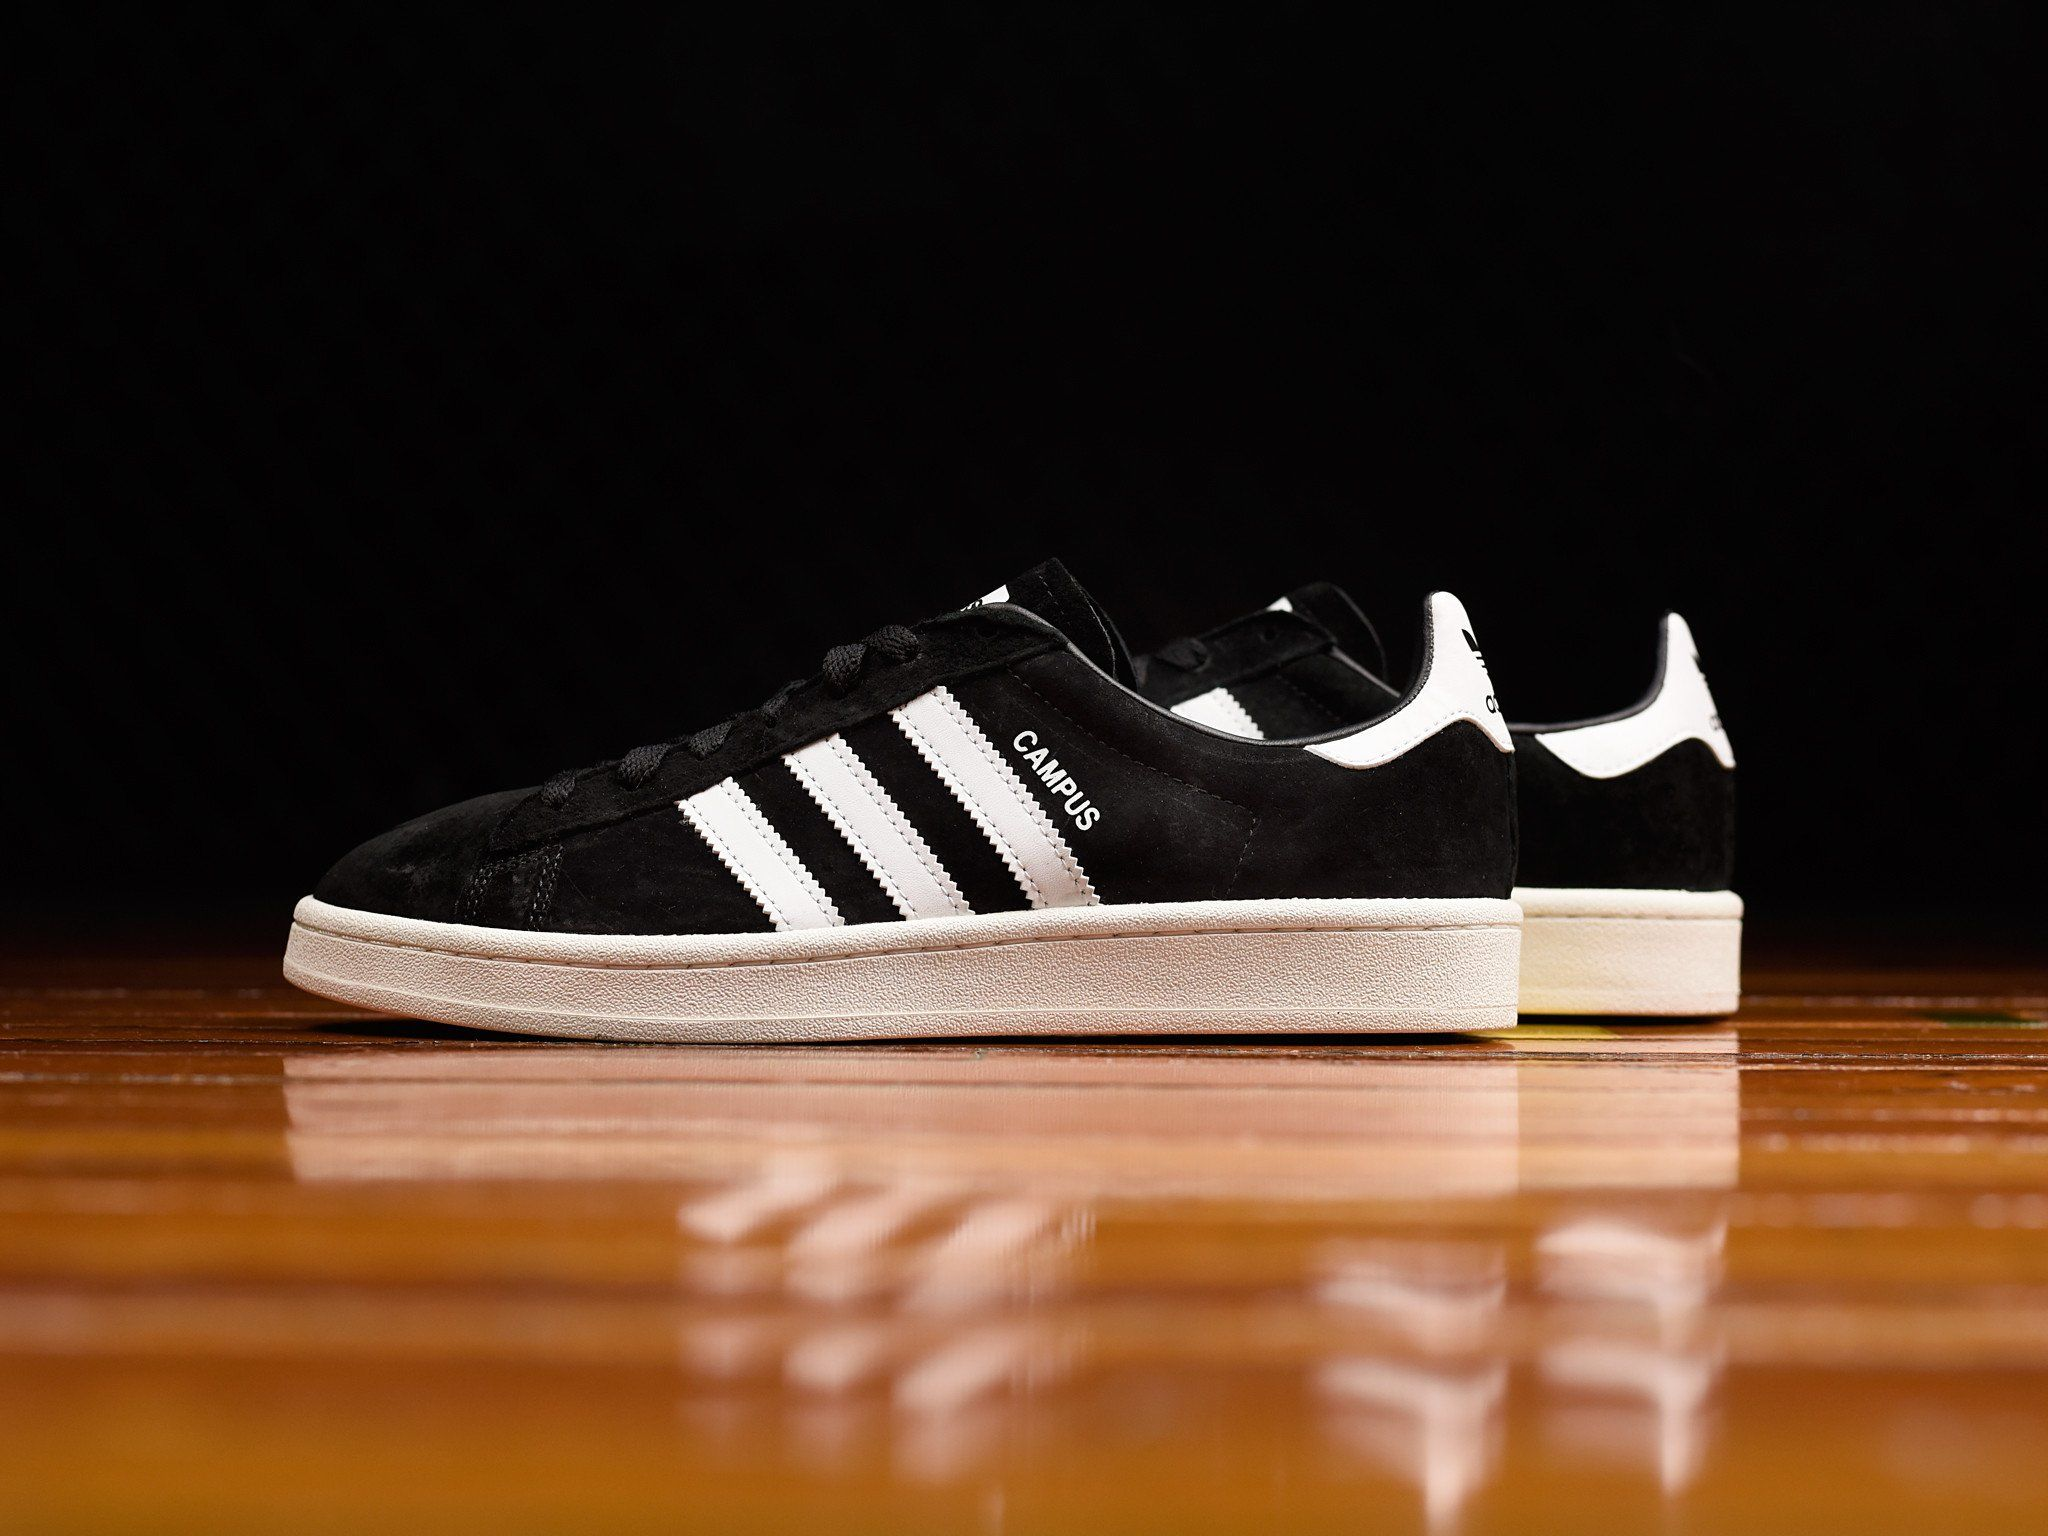 new style 751a9 c700b Mens Adidas Campus BZ0084